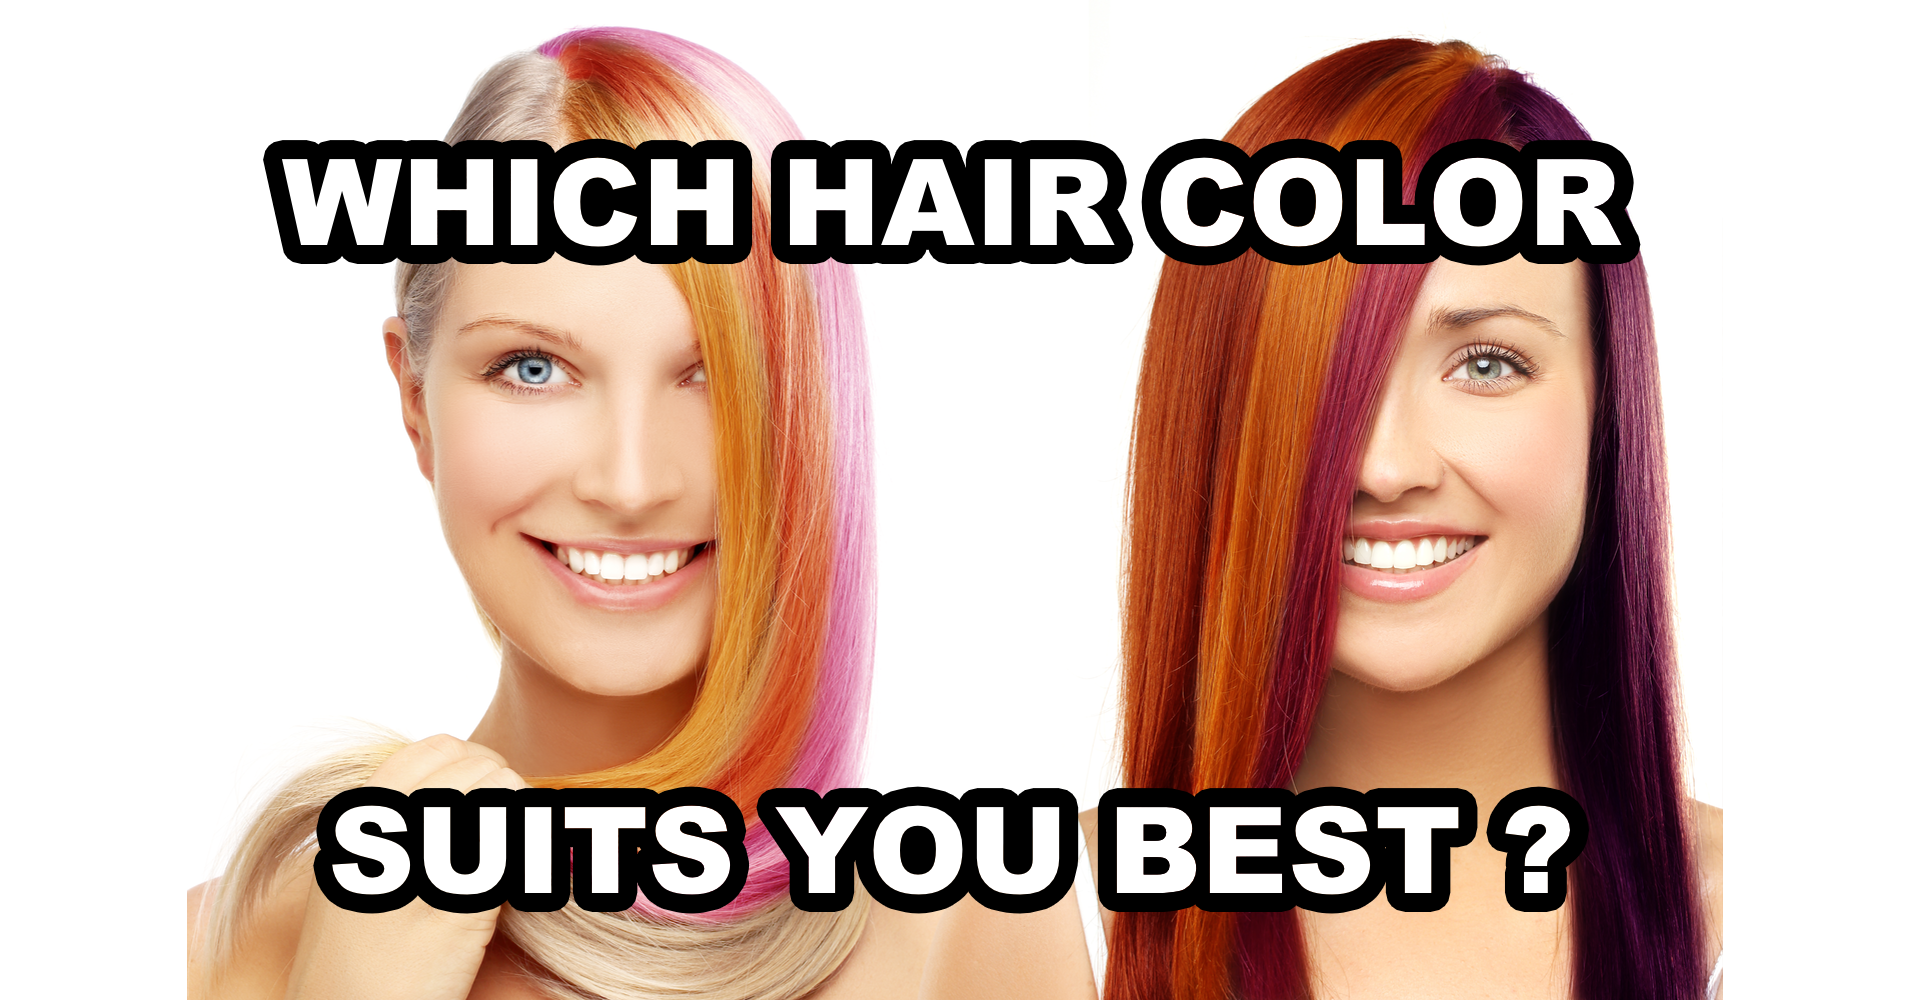 which hair color suits you best? - quiz - quizony